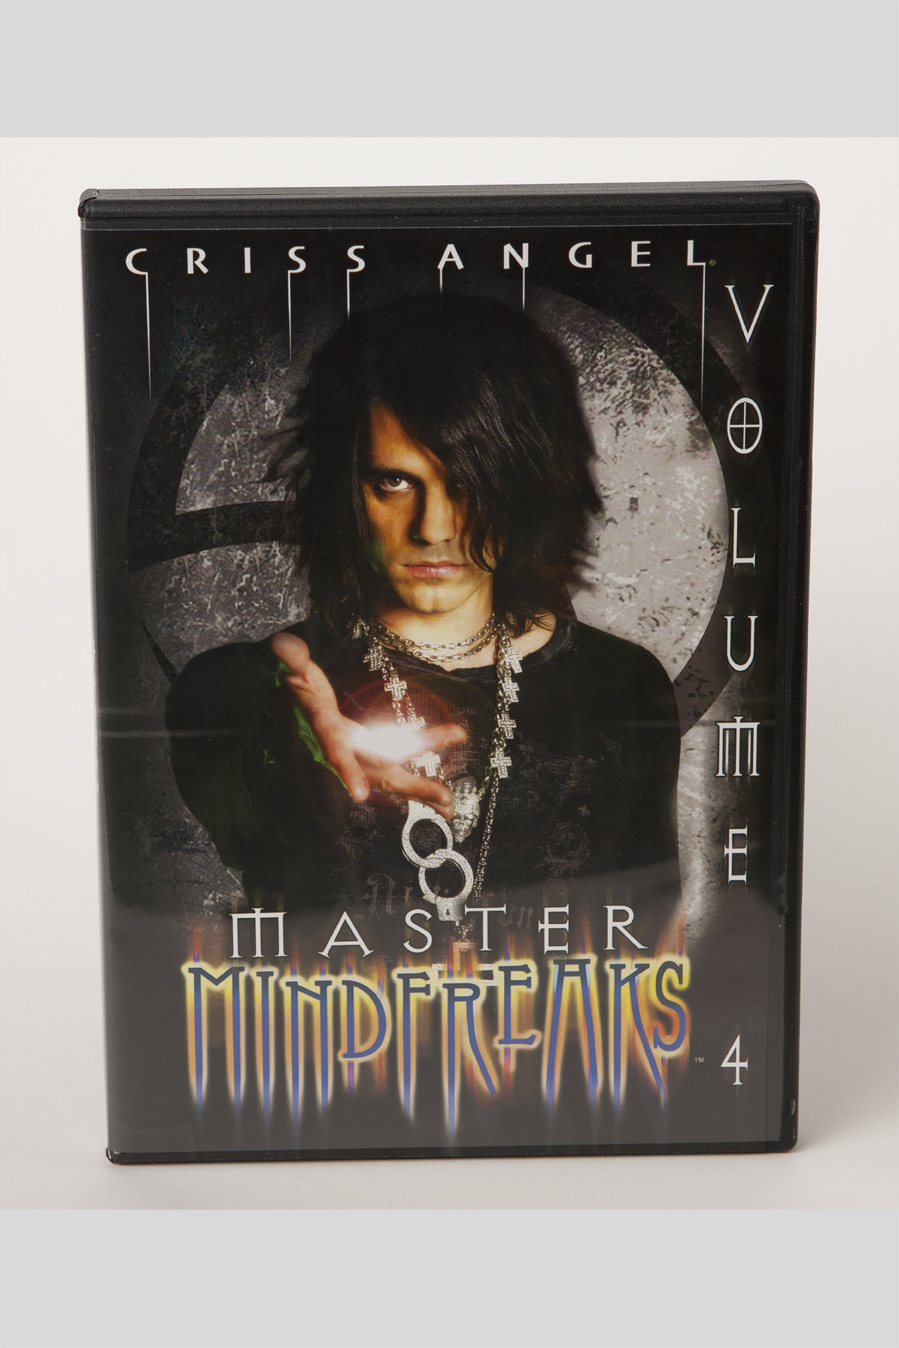 DVD CRISS ANGEL MASTER MINDFREAKS VOL 4-0